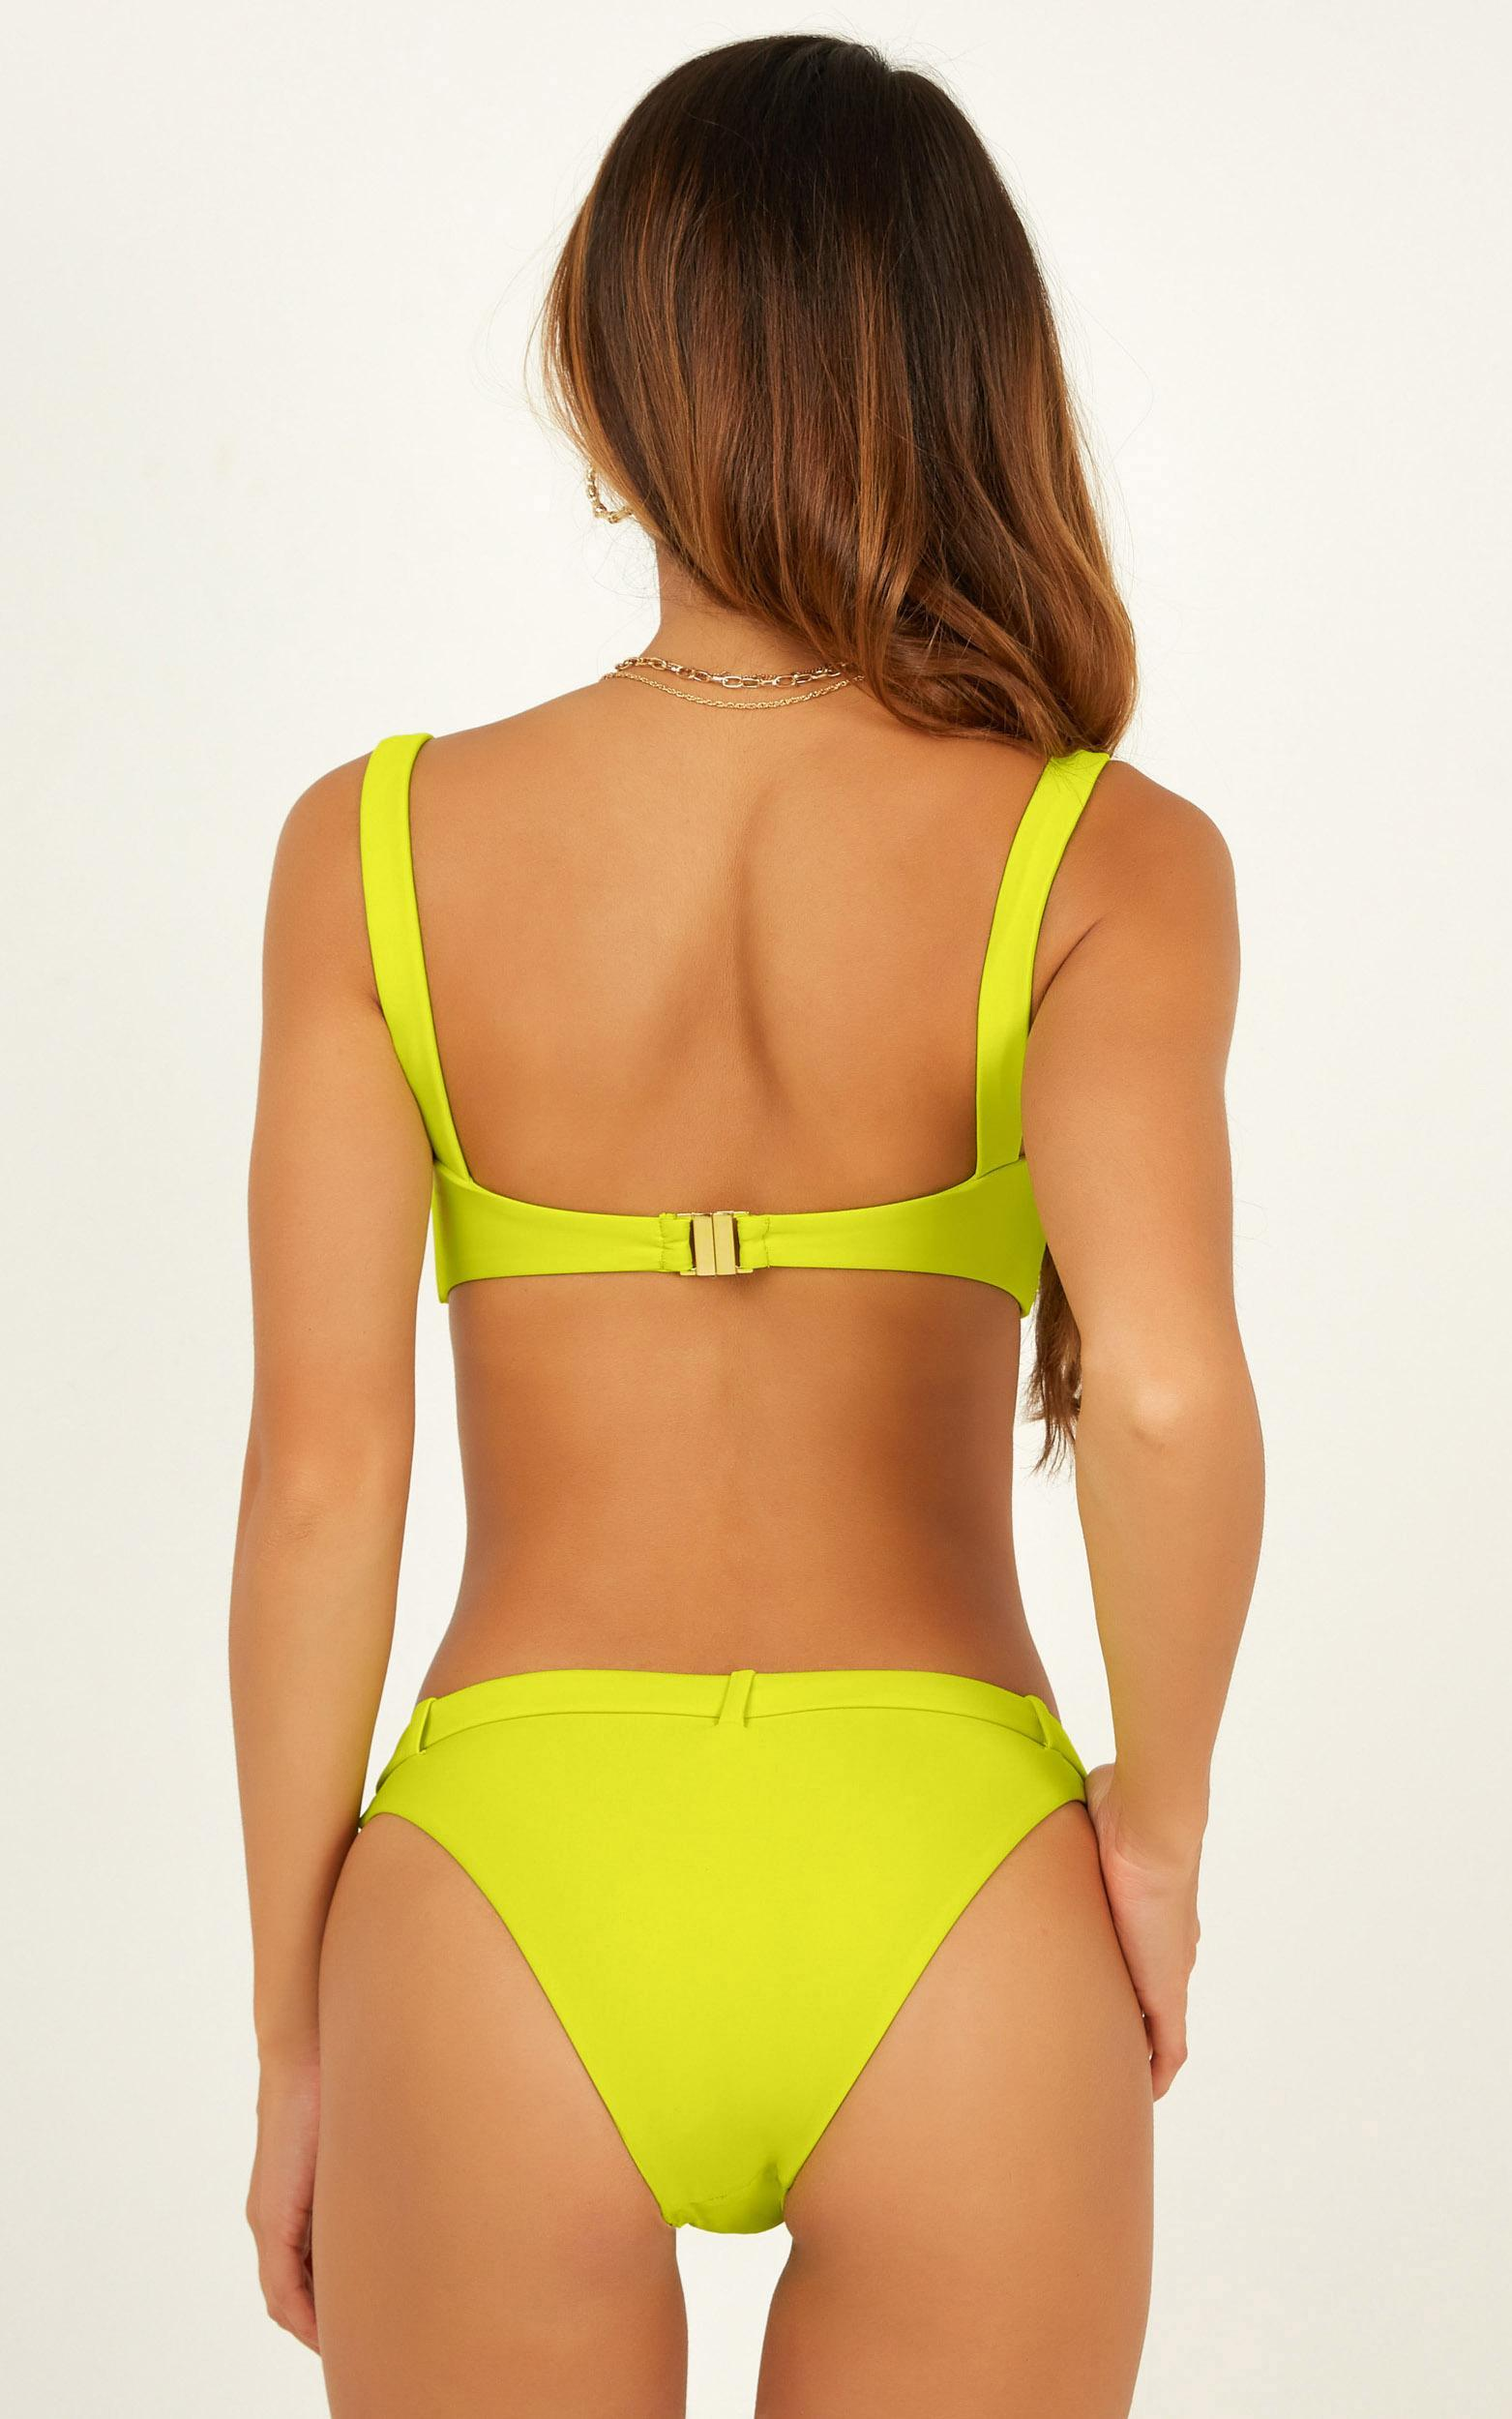 Nora Bikini Bottom in lime - 20 (XXXXL), Green, hi-res image number null